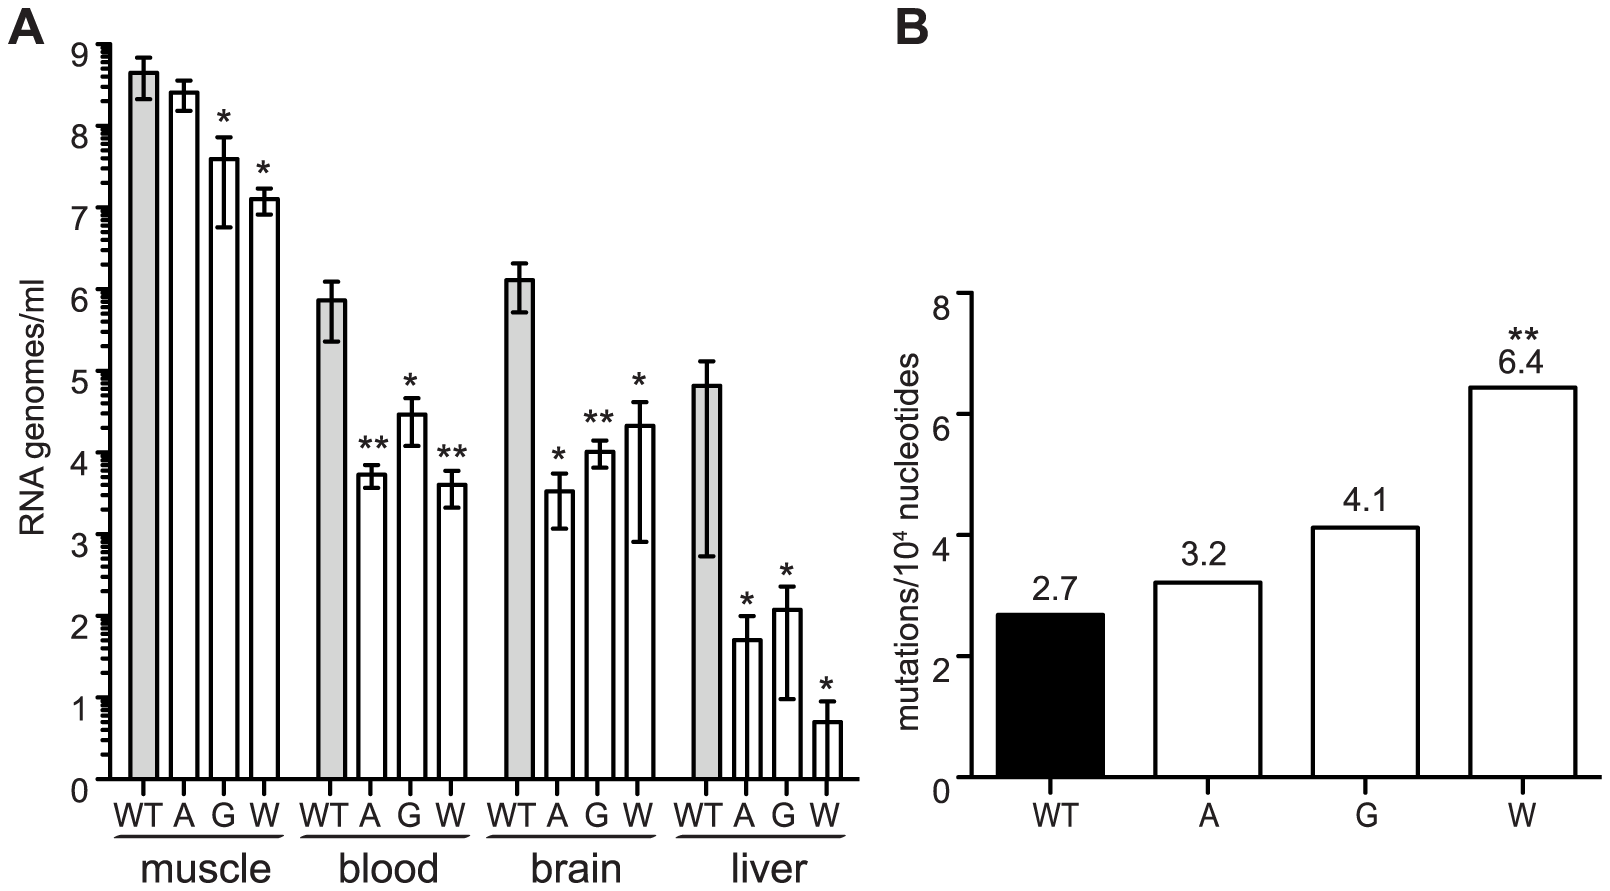 Mutator variants 483A, G, and W are attenuated in mice.